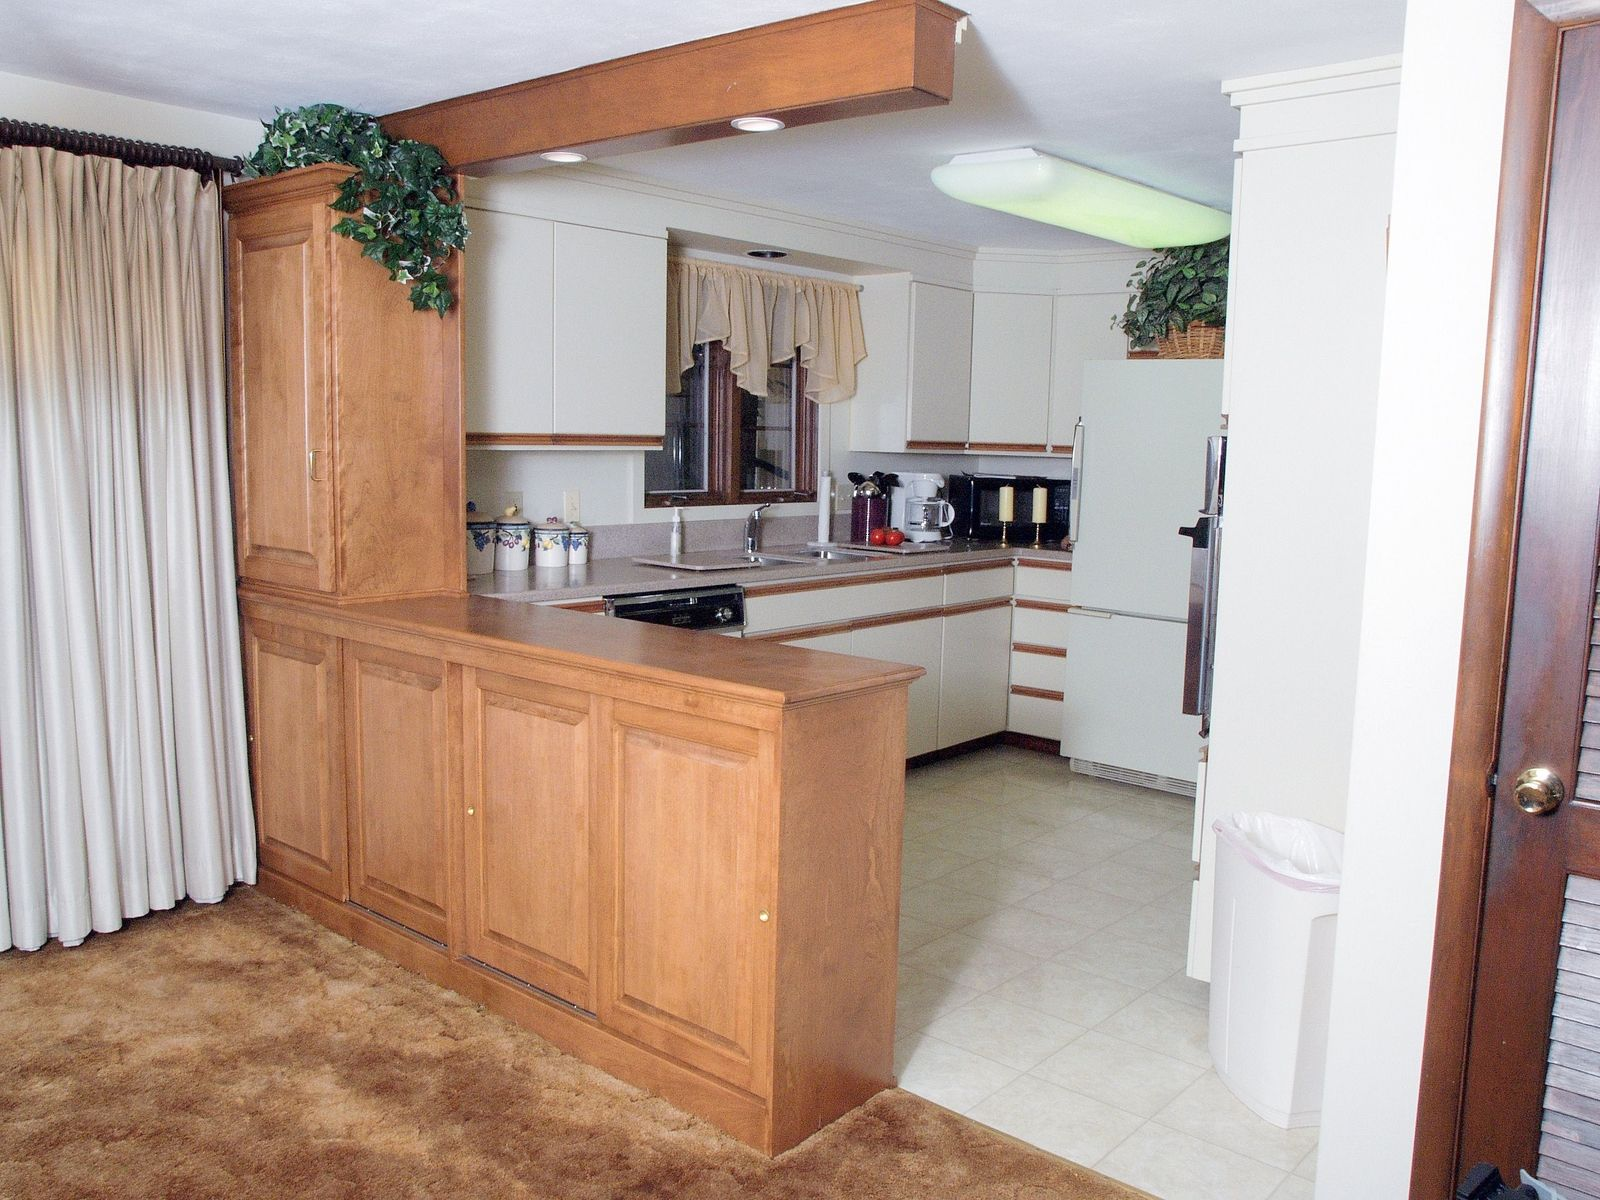 Kitchen Divider Design Ideas ~ Handmade room divider system by custom furniture design